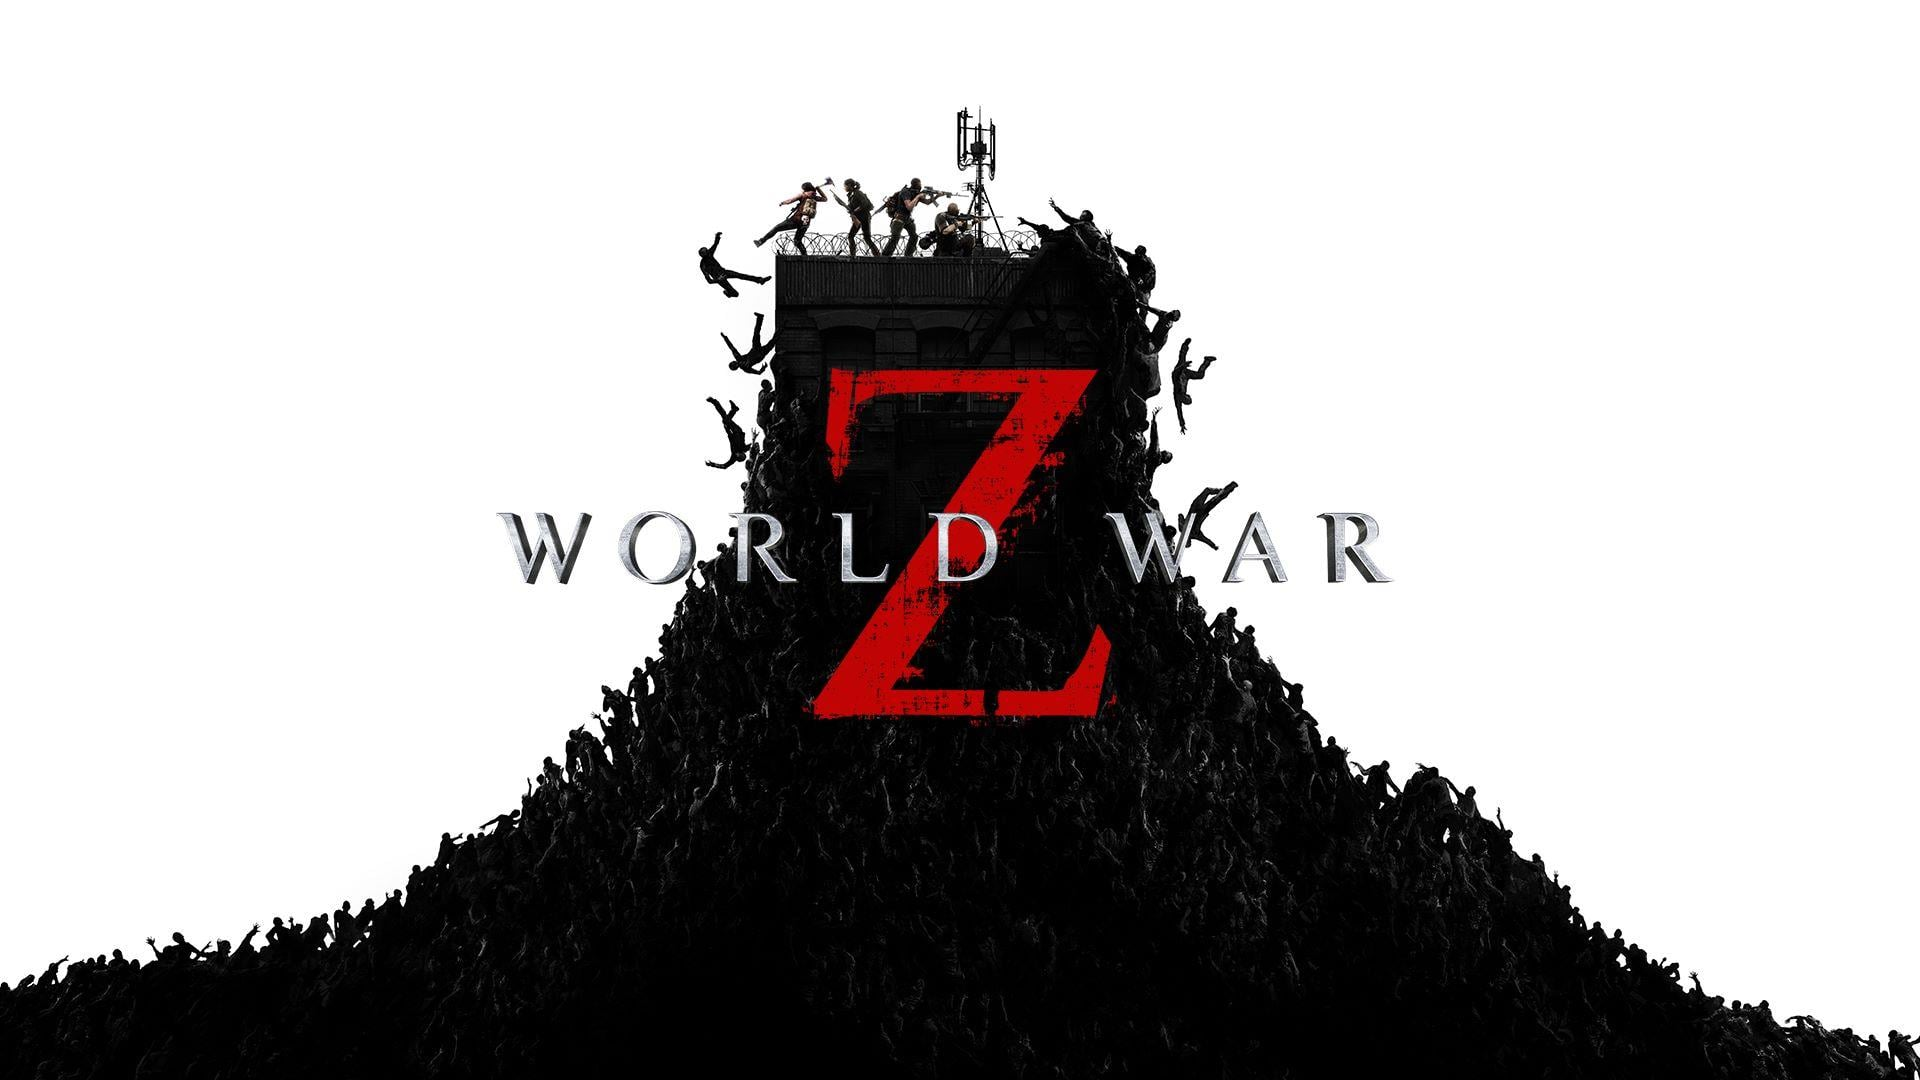 Free movie world war z 2 | World War Z (2013) Free Movie